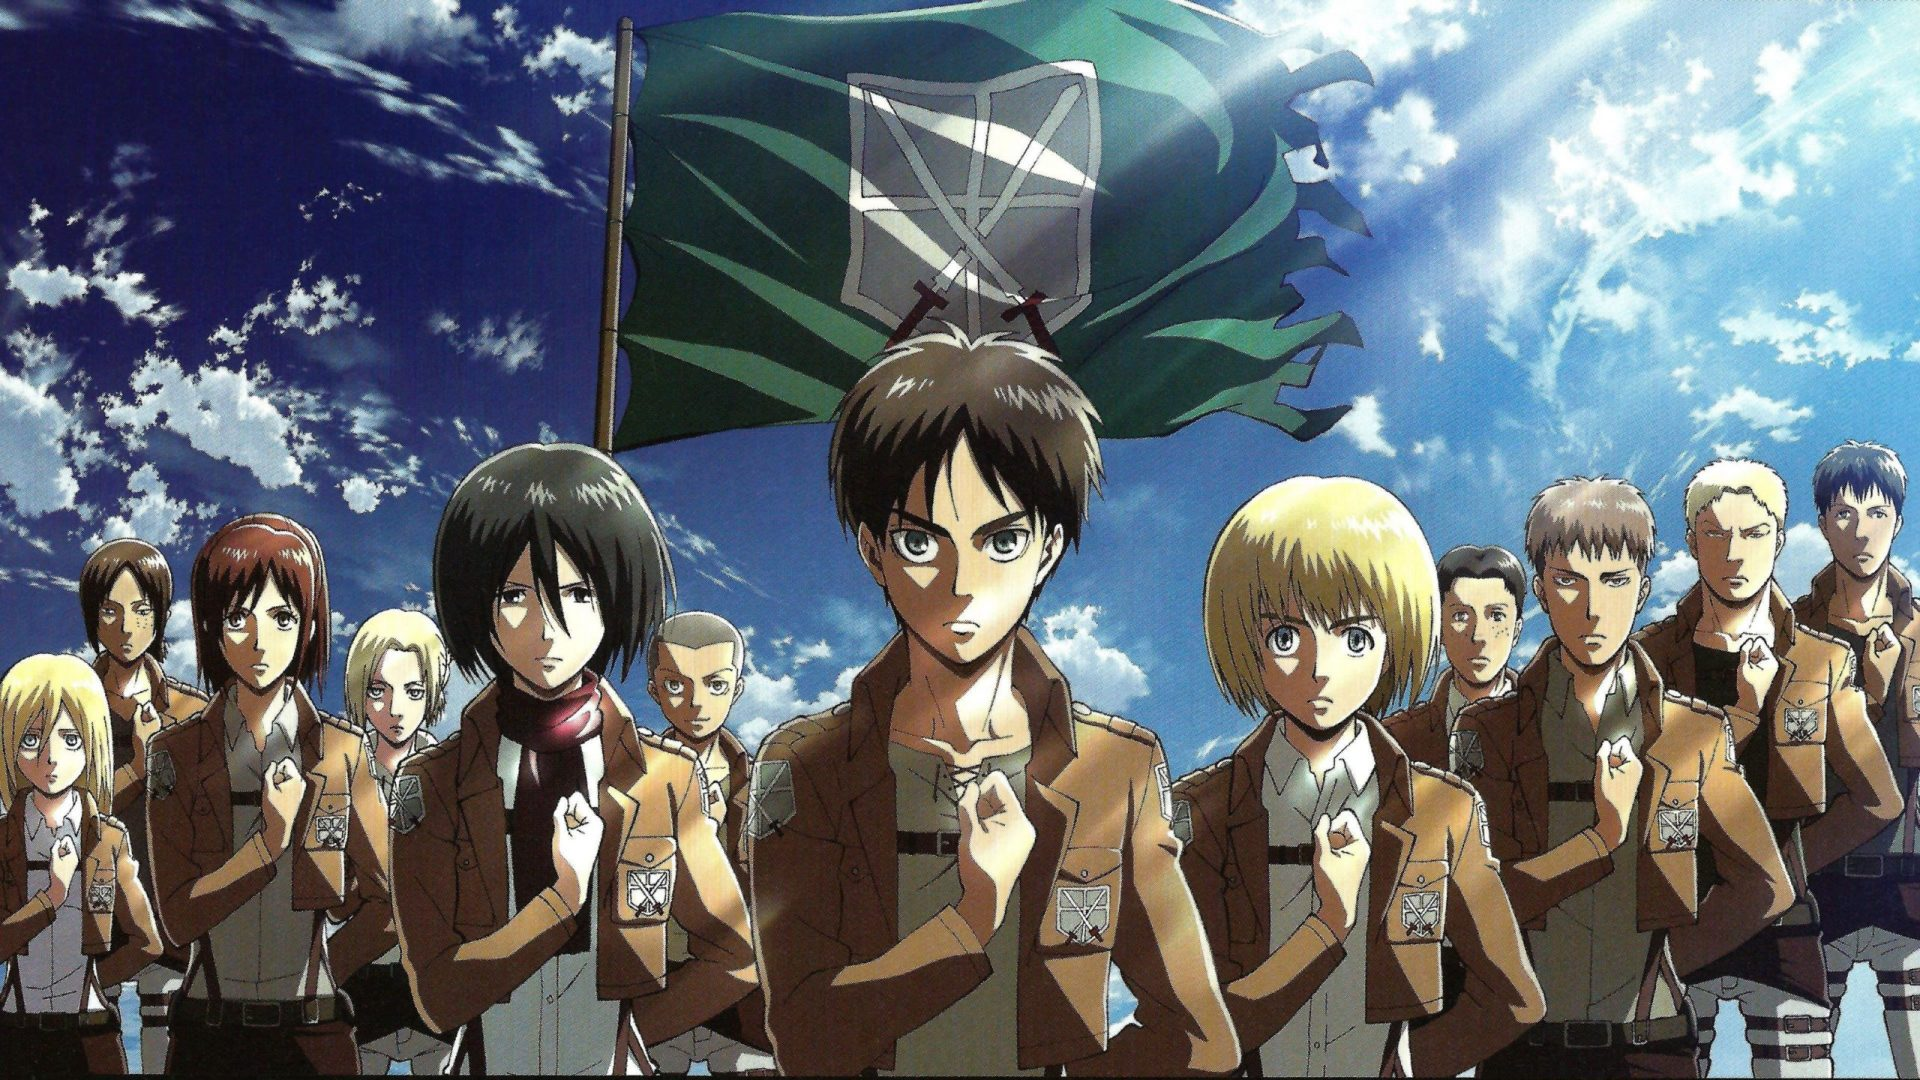 Attack on Titan Chapter 137 Spoilers Update: Manga Raws Leaks out on Friday, February 5 - Block Toro